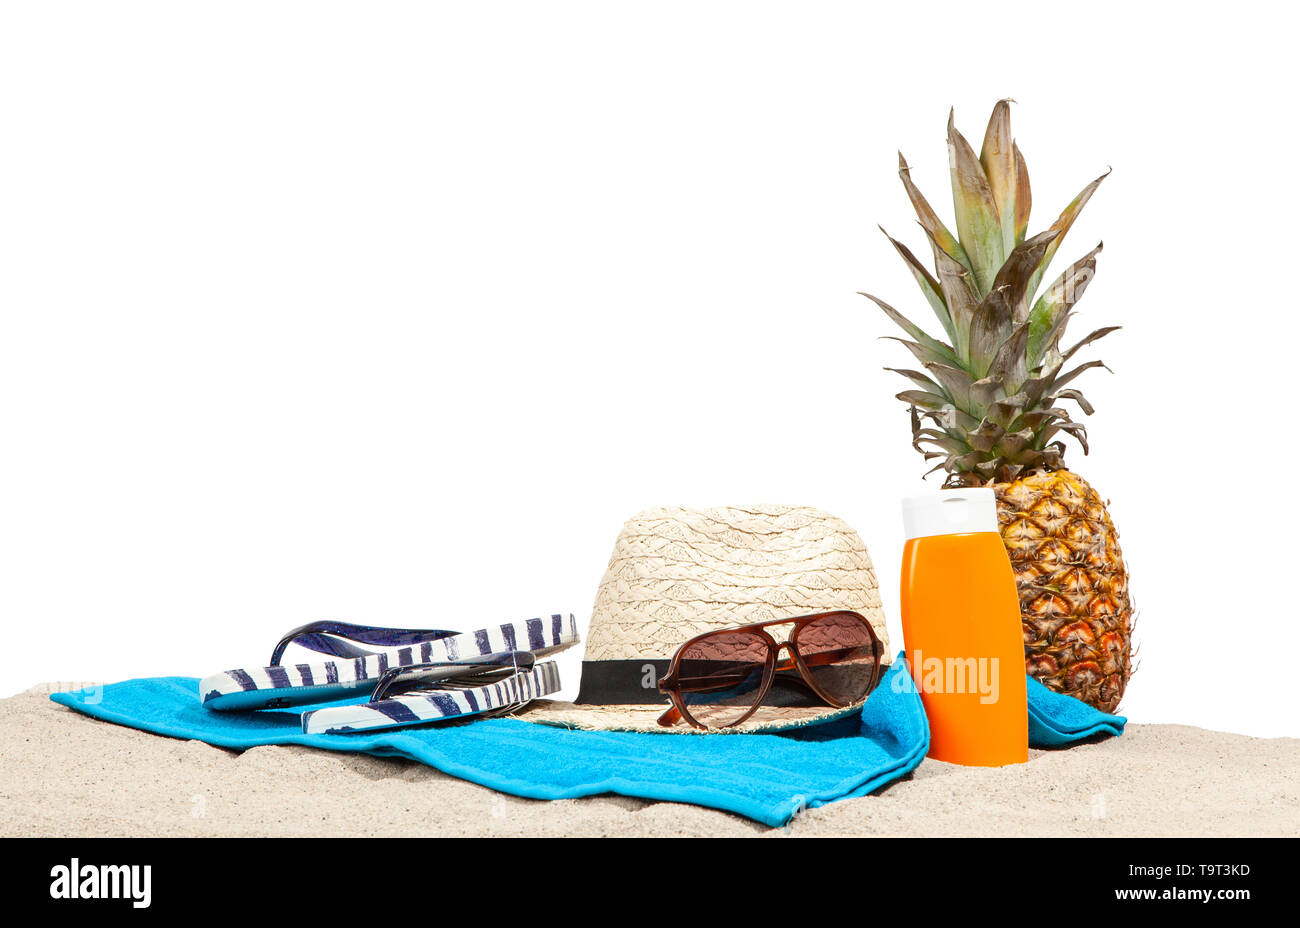 Beach accessories isolated on white background - Stock Image